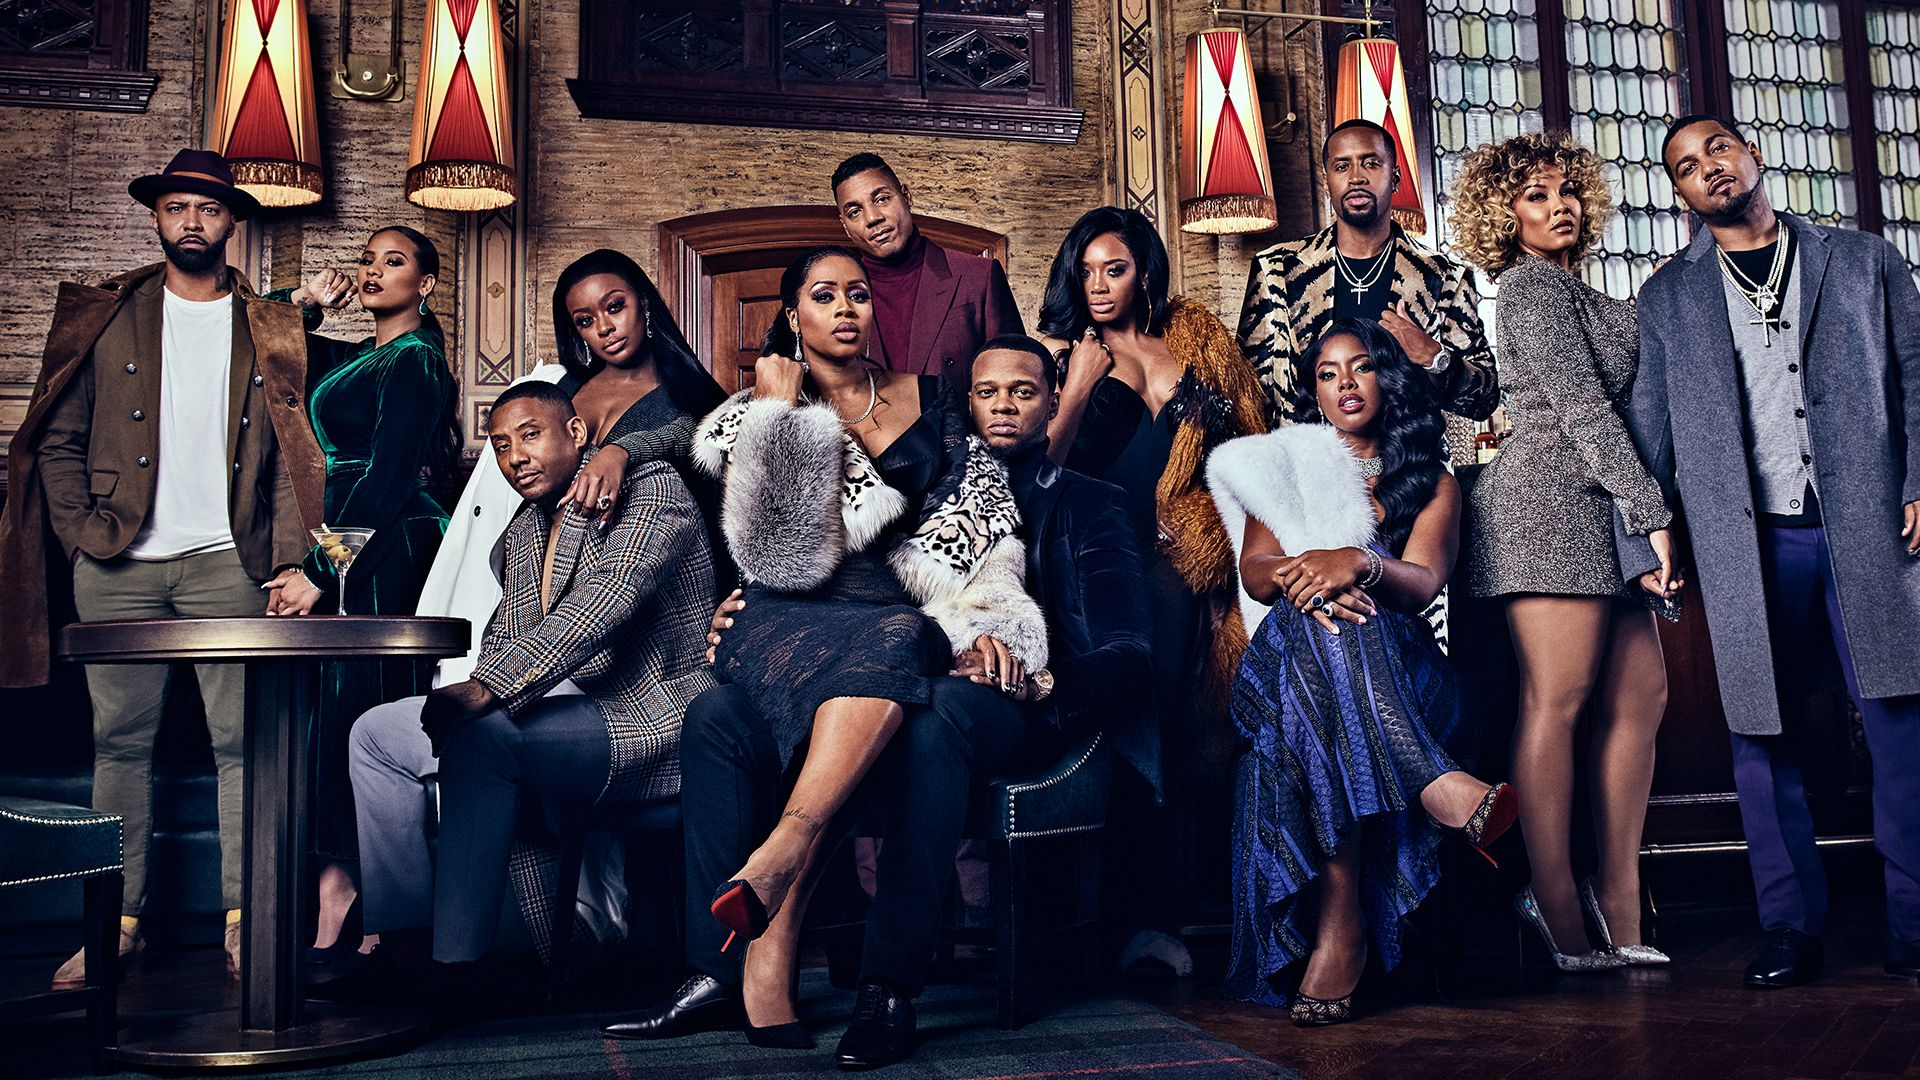 Love and hip hop atlanta crew 2015